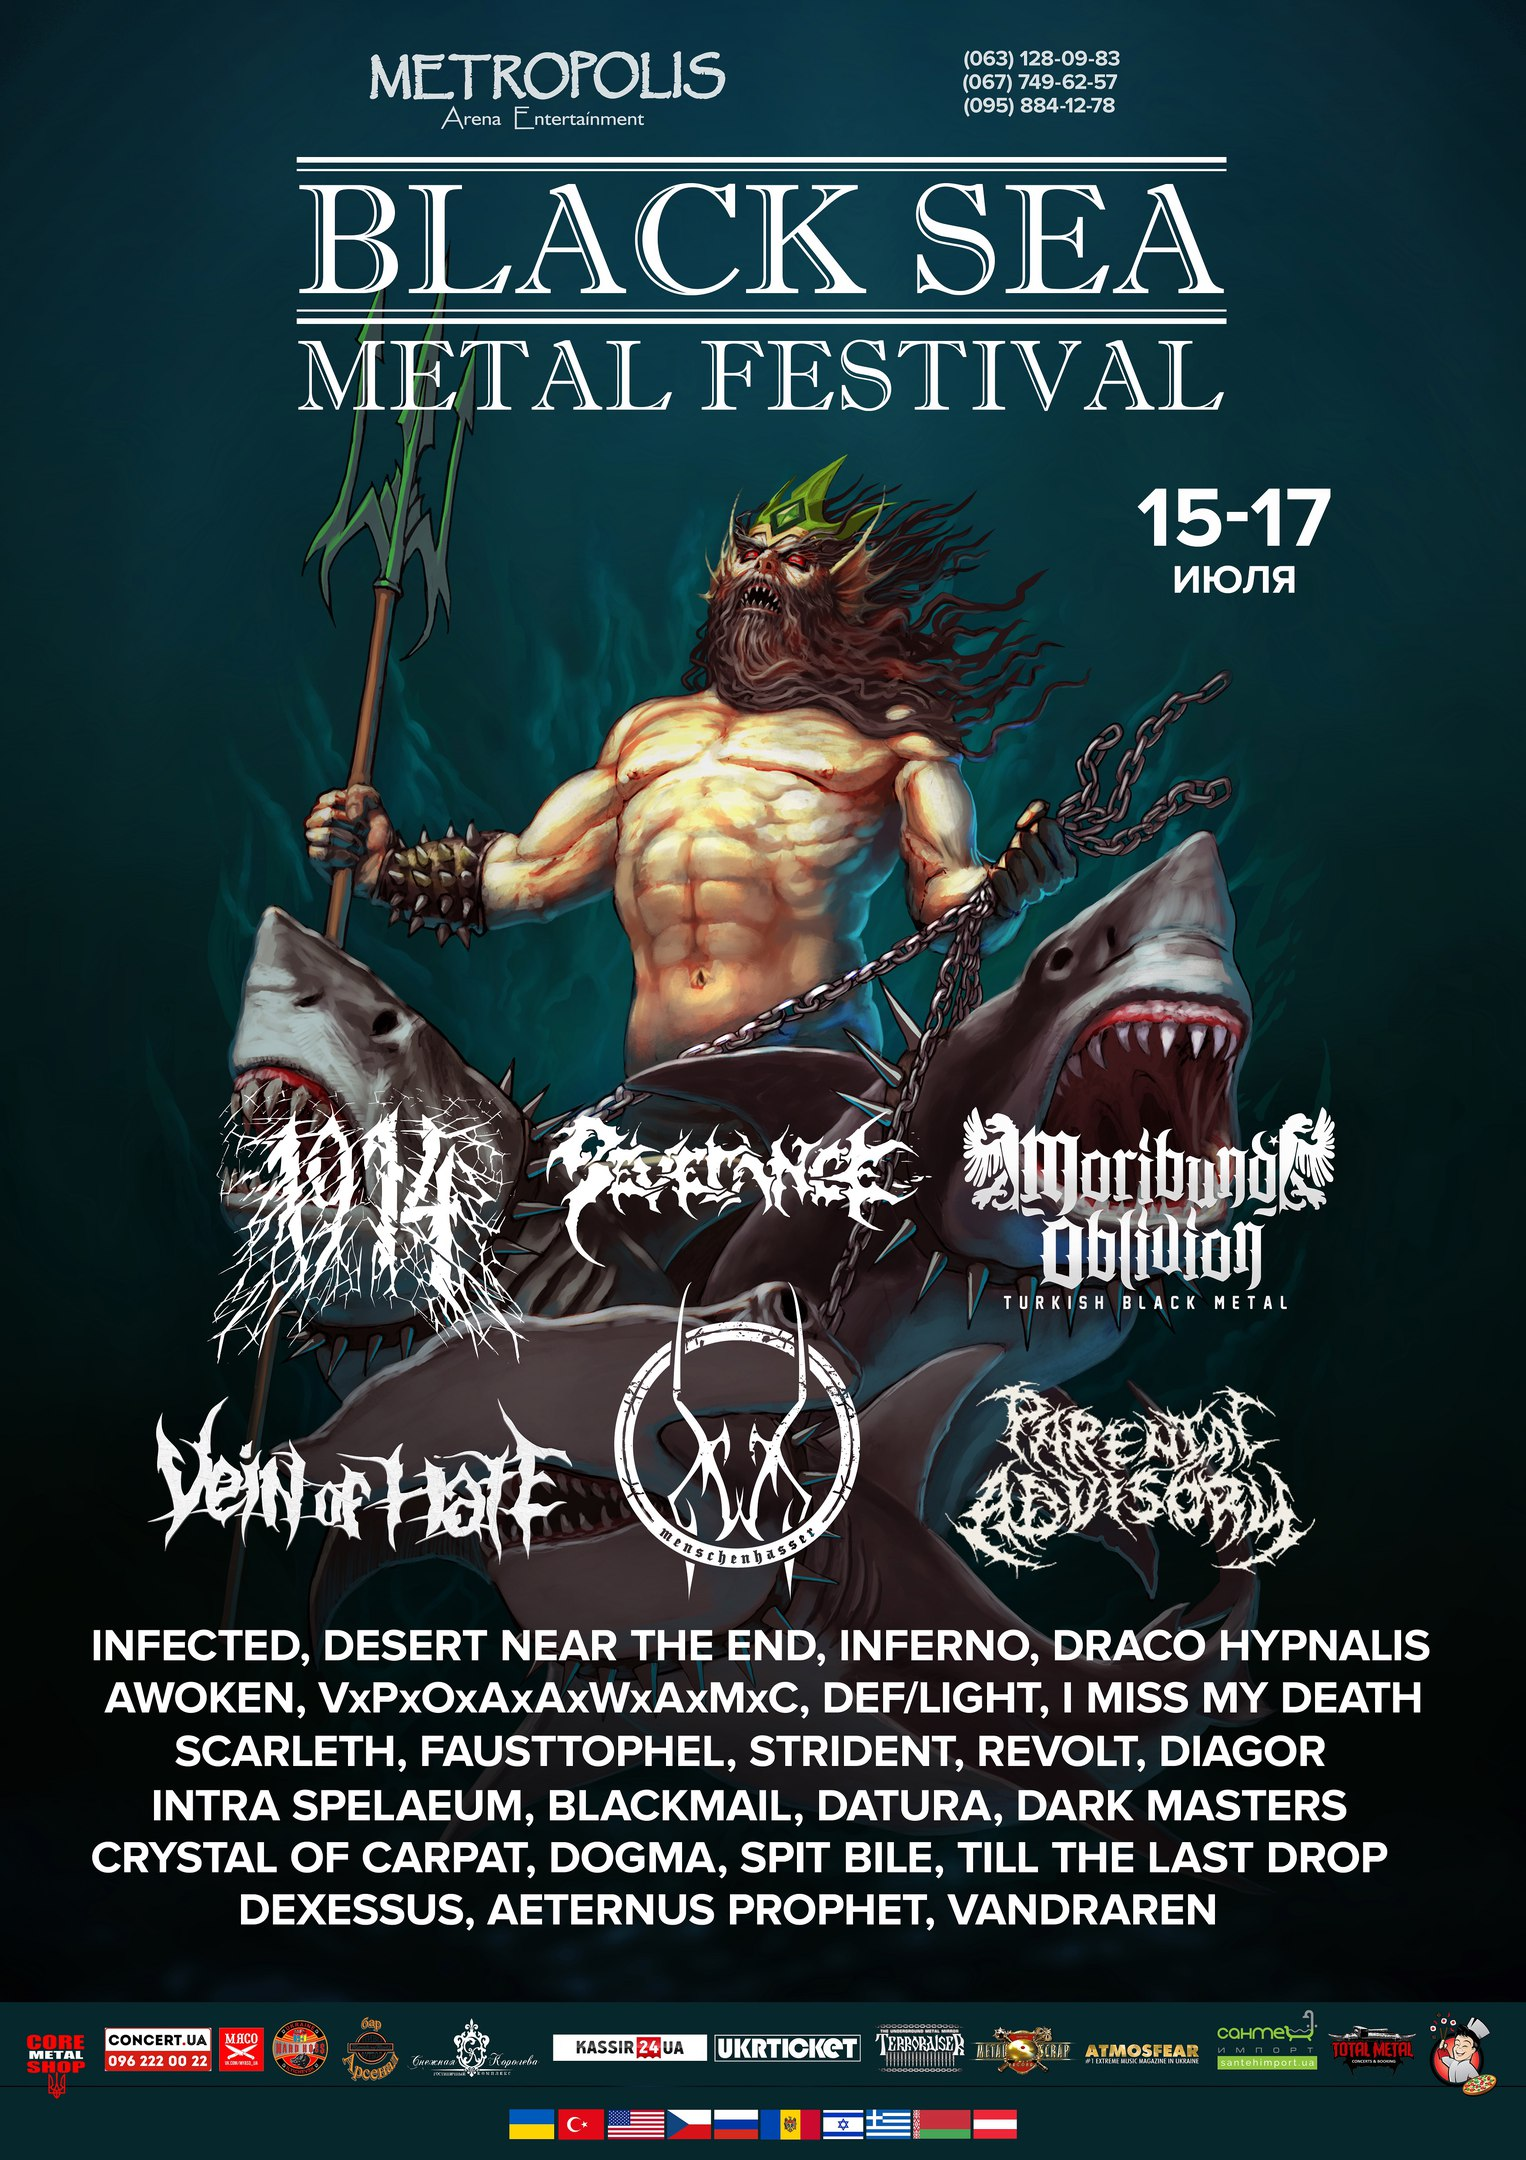 BLACK SEA METAL FESTIVAL III (15-17 июля) 2016